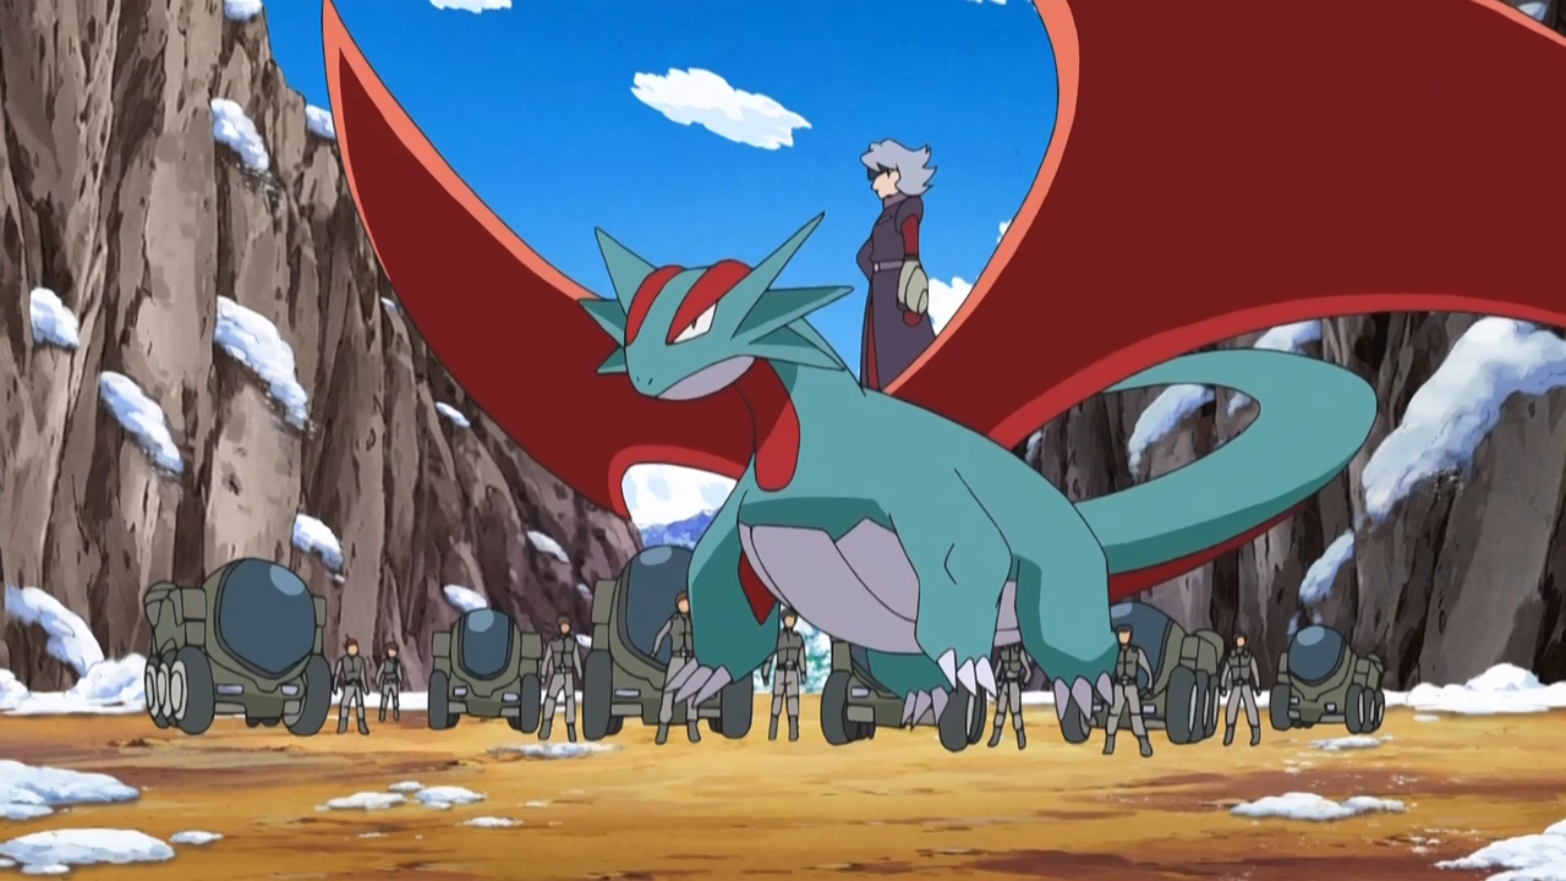 Salamence was J's main Pokémon. It was used for transport when she's on-field but also to brutally attack any interference with Hyper Beam and Flamethrower.